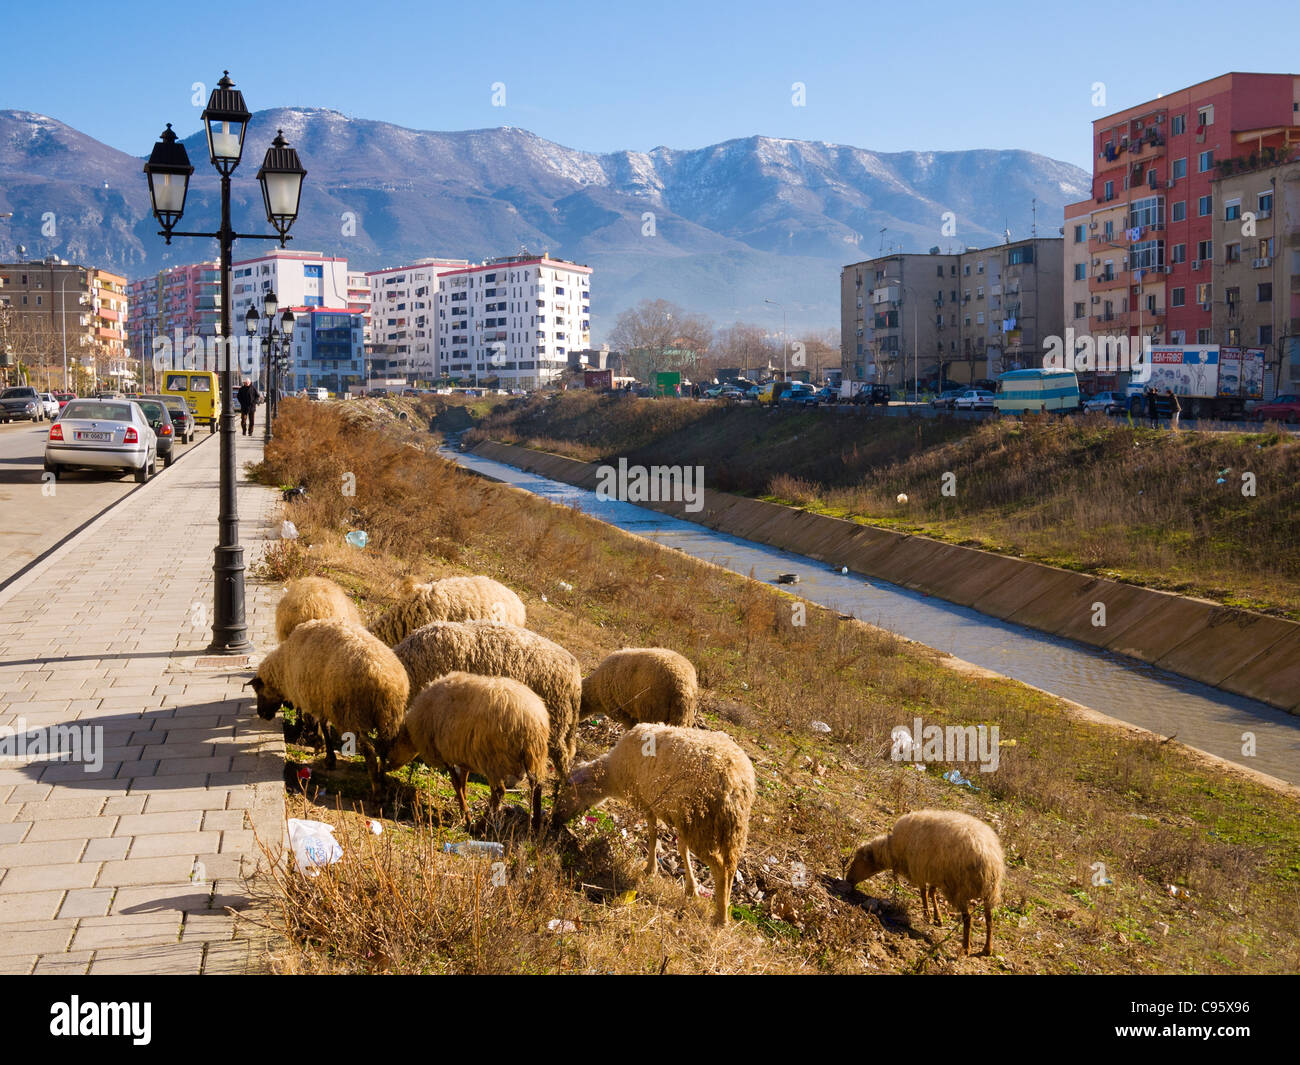 Sheep grazing on the banks of the River Lana, Bulevardi Zhan D'Ark, Tirana, Albania - Stock Image